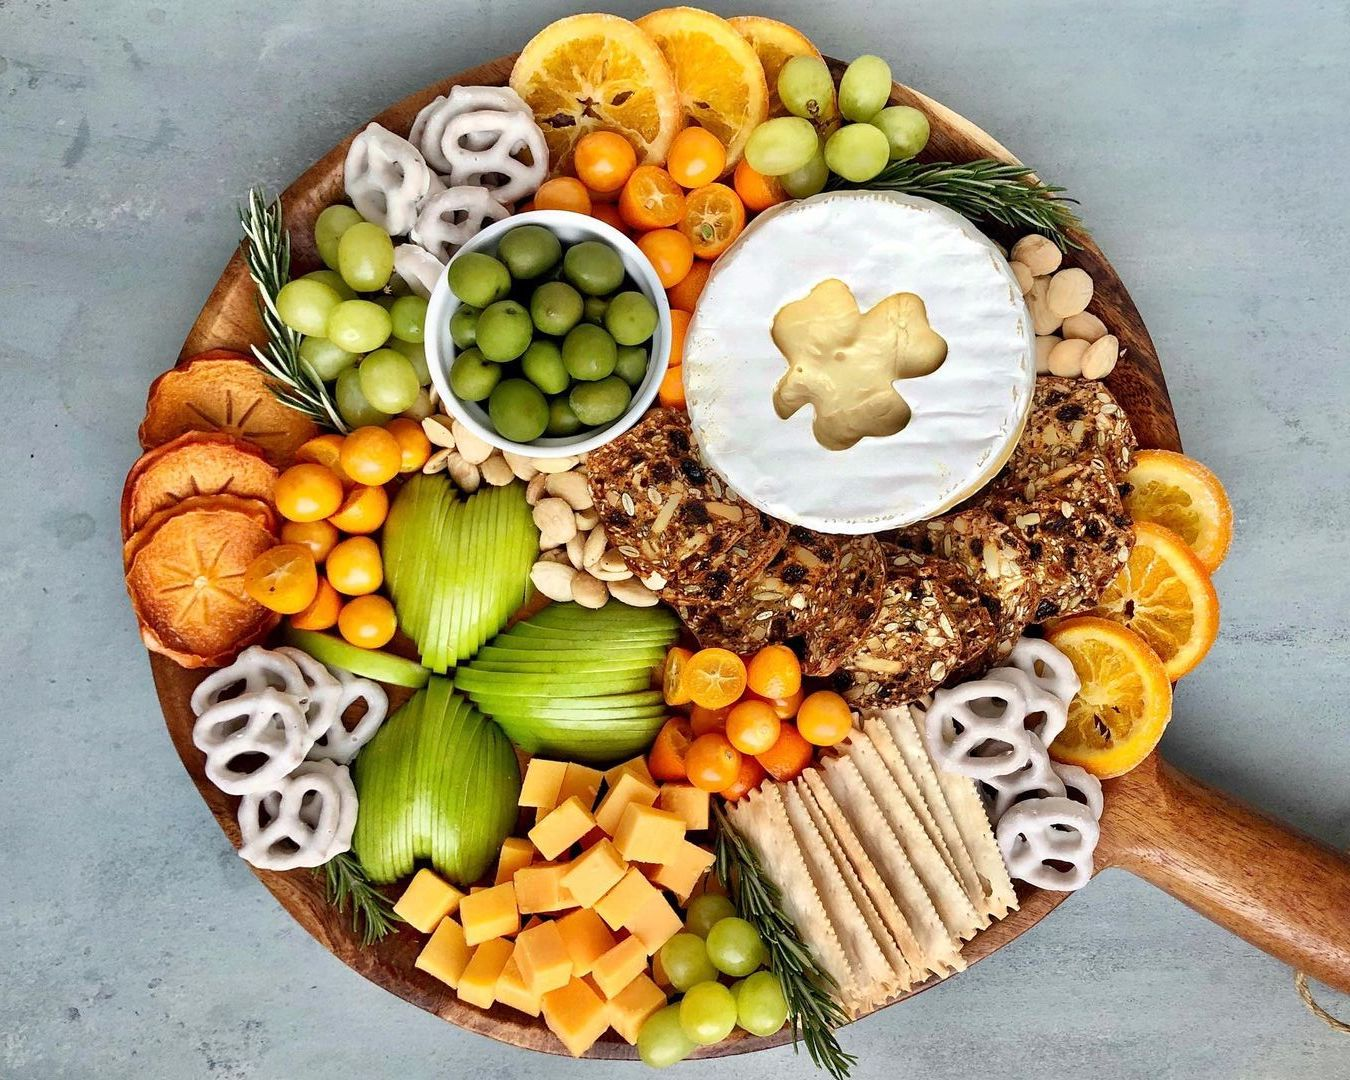 wood cheese board with shamrock shapes